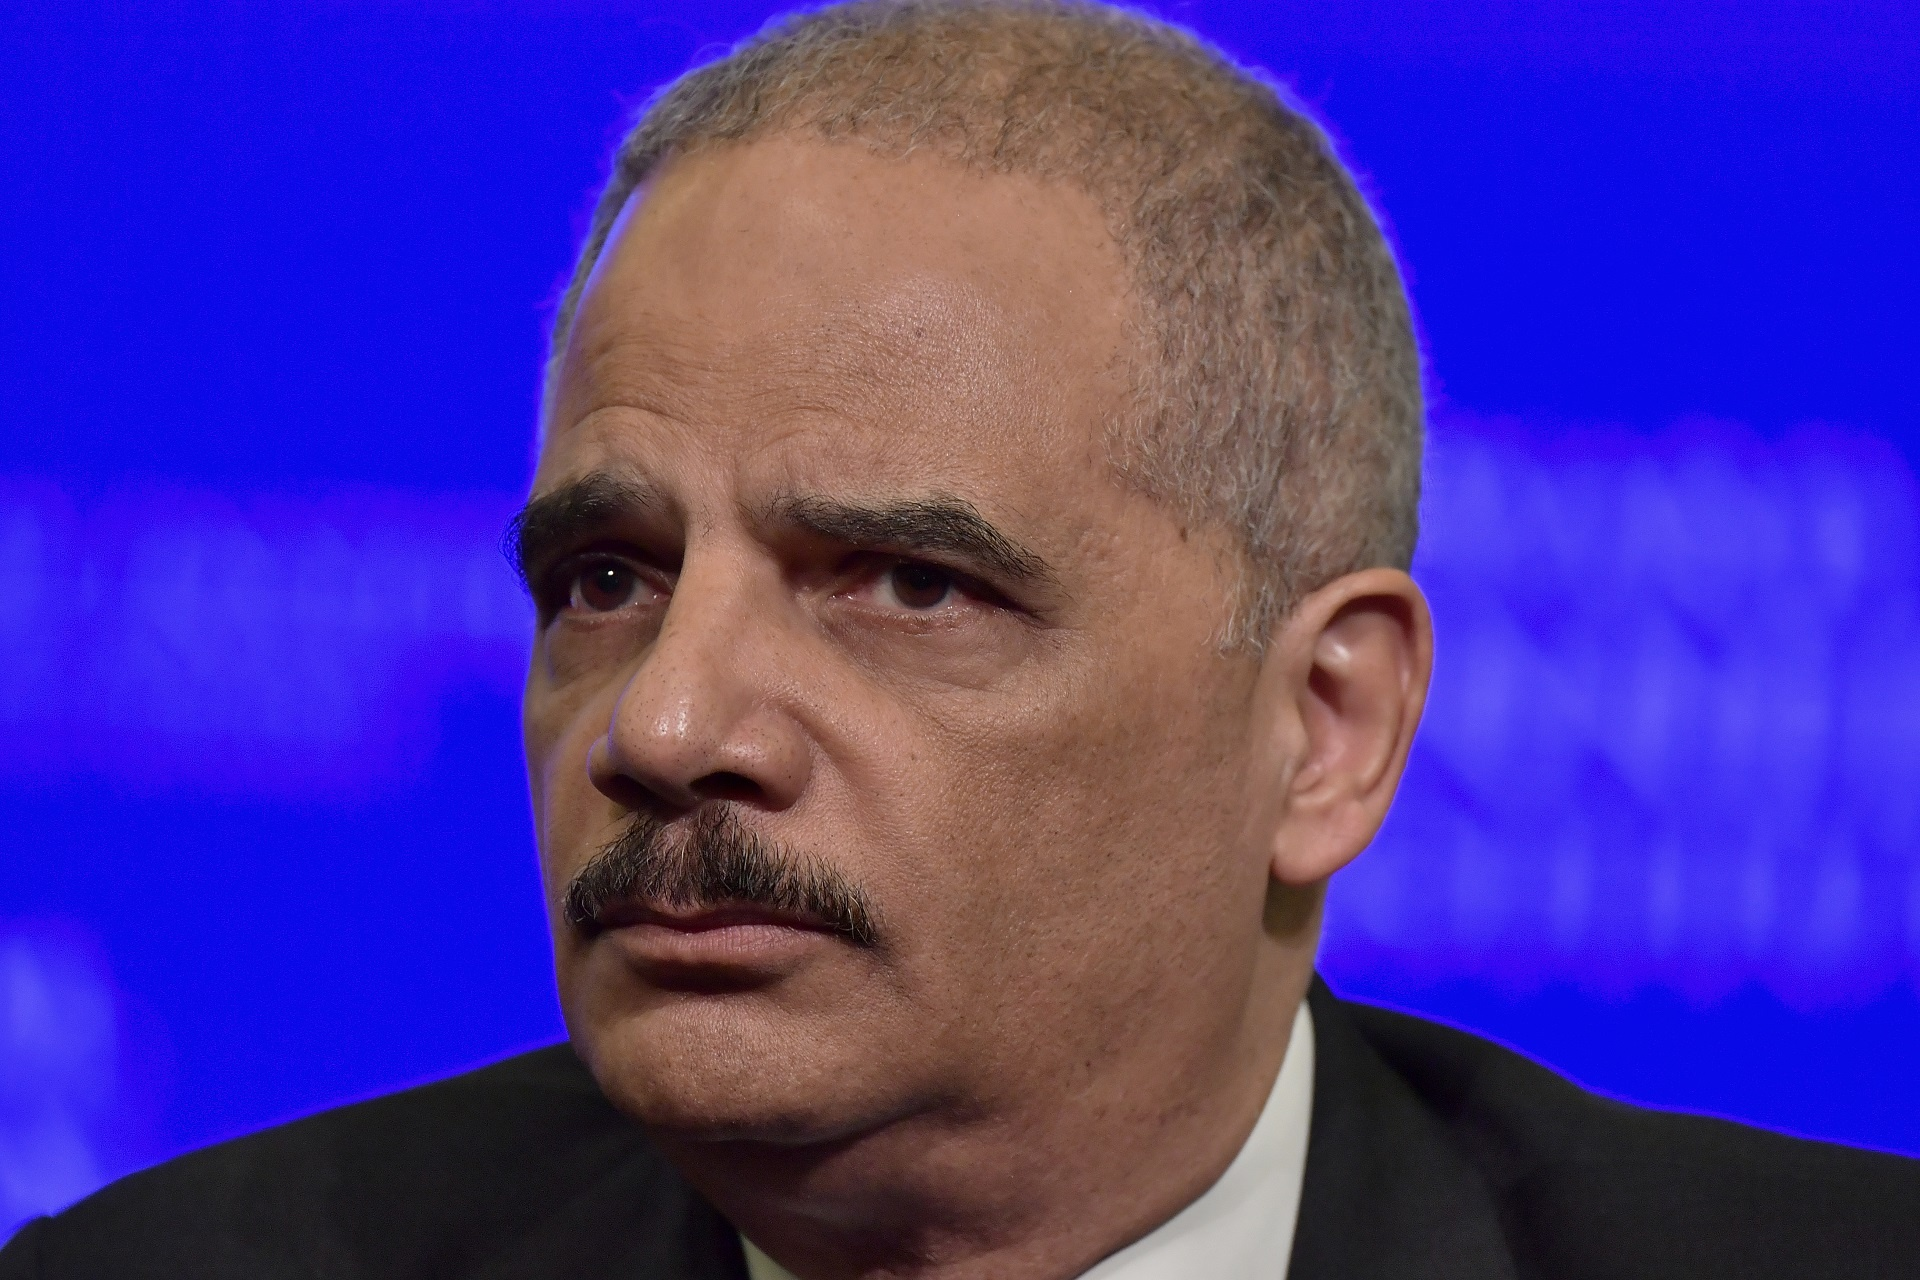 'Shut the hell up': Eric Holder triggered by reporter exposing Andrew McCabe prosecutor's Democratic bona fides